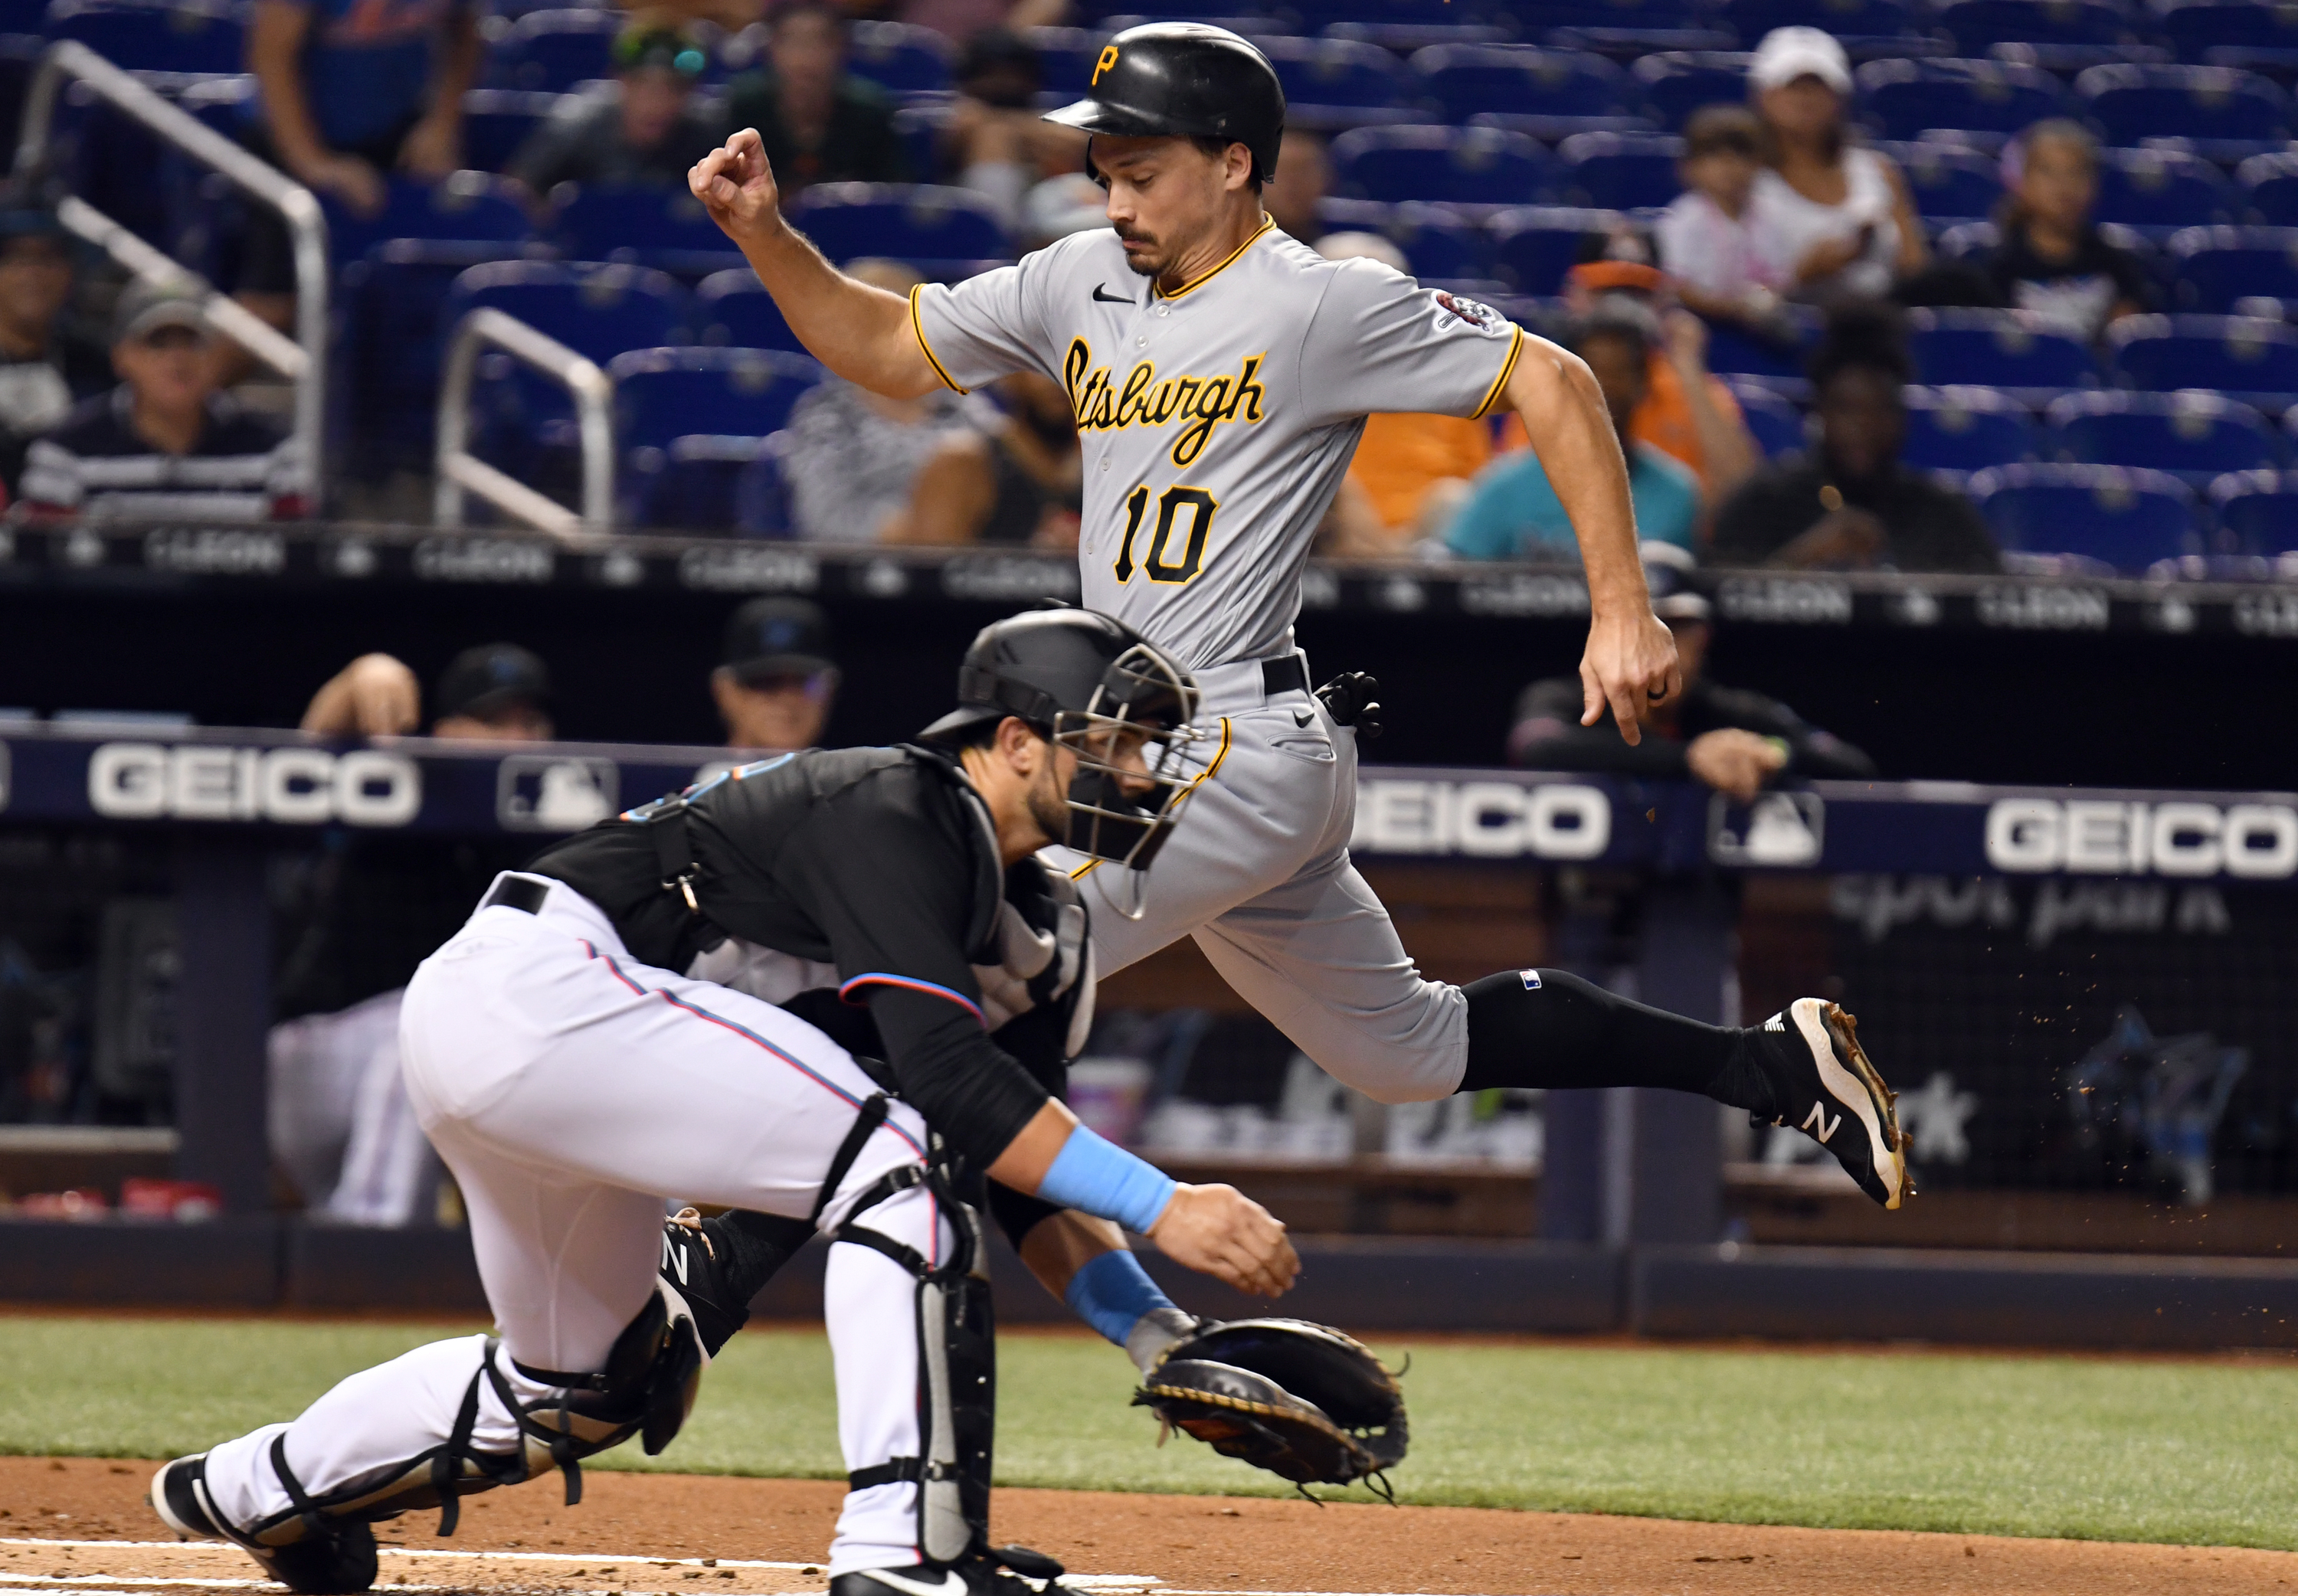 Pittsburgh Pirates left fielder Bryan Reynolds (10) scores a run as Miami Marlins catcher Peyton Henry (86) awaits the throw during the first inning at loanDepot Park